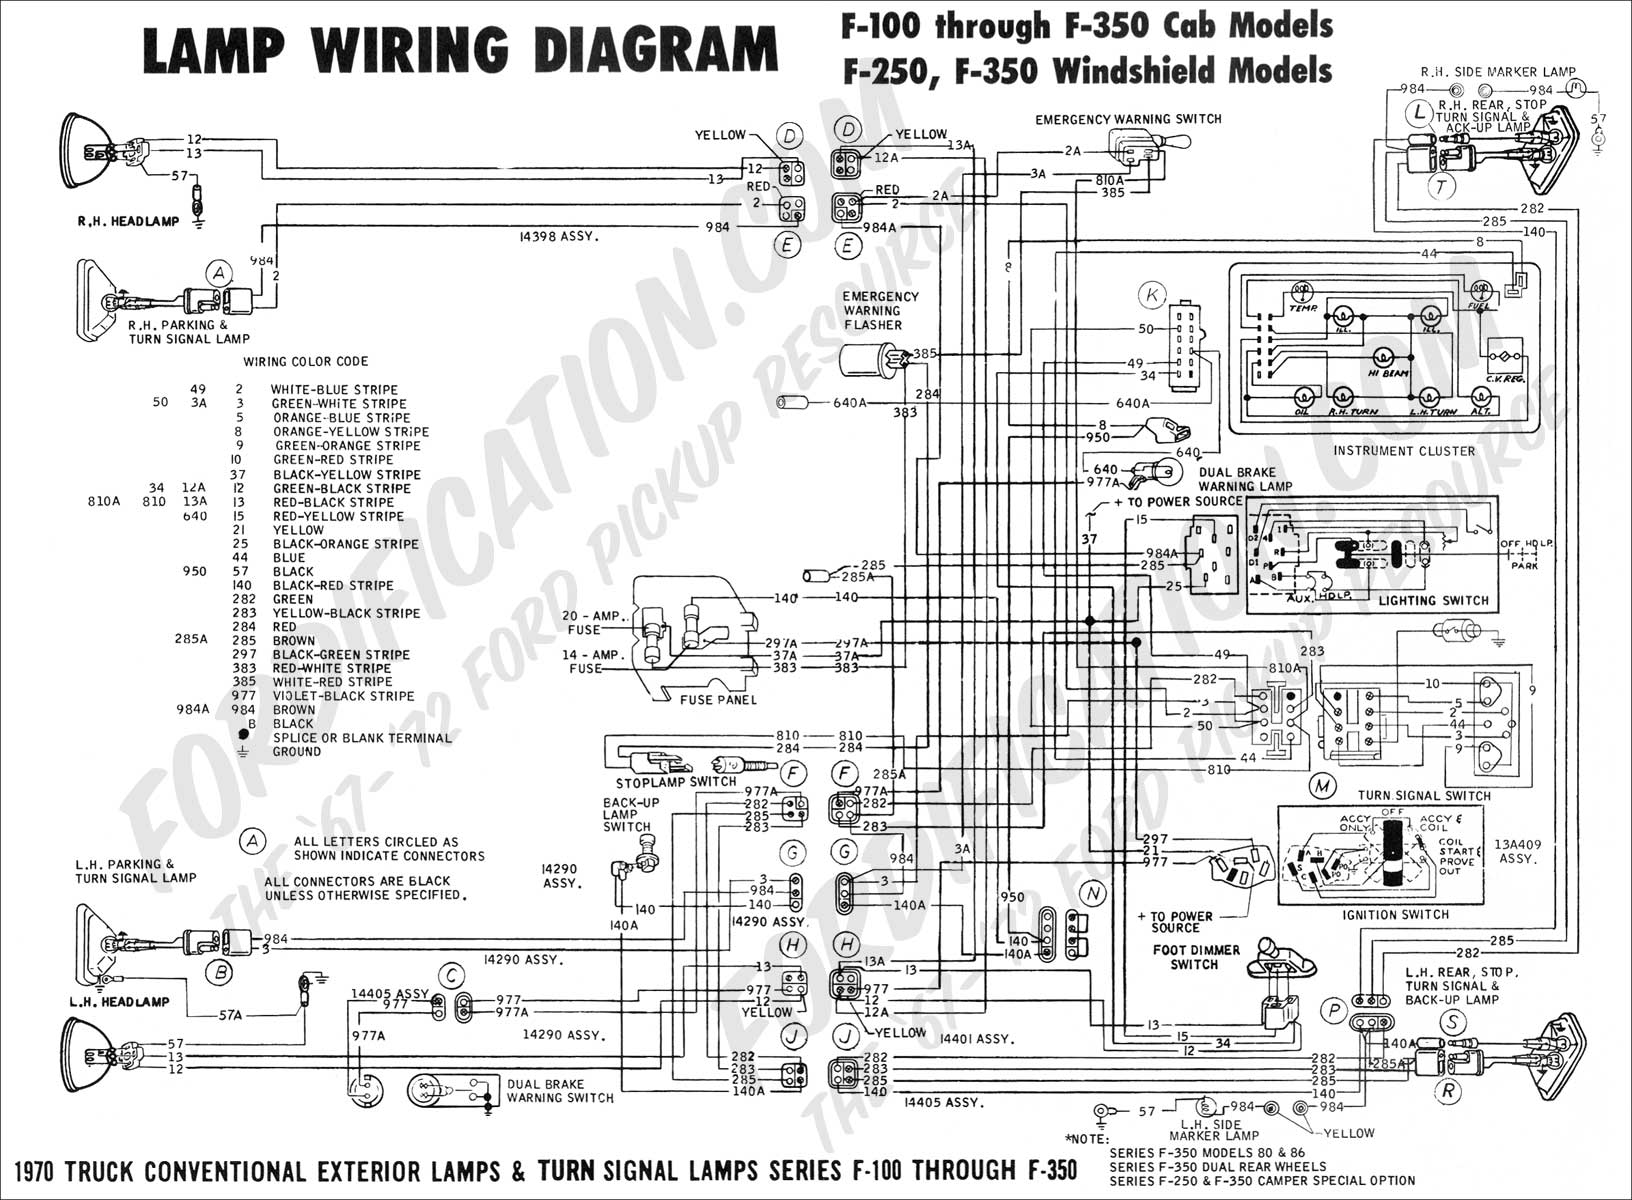 wiring diagram_70ext lights01?resize=665%2C489 ford f150 right rear taillight is out where is fuse and how 1999 ford f150 turn signal wiring diagram at soozxer.org